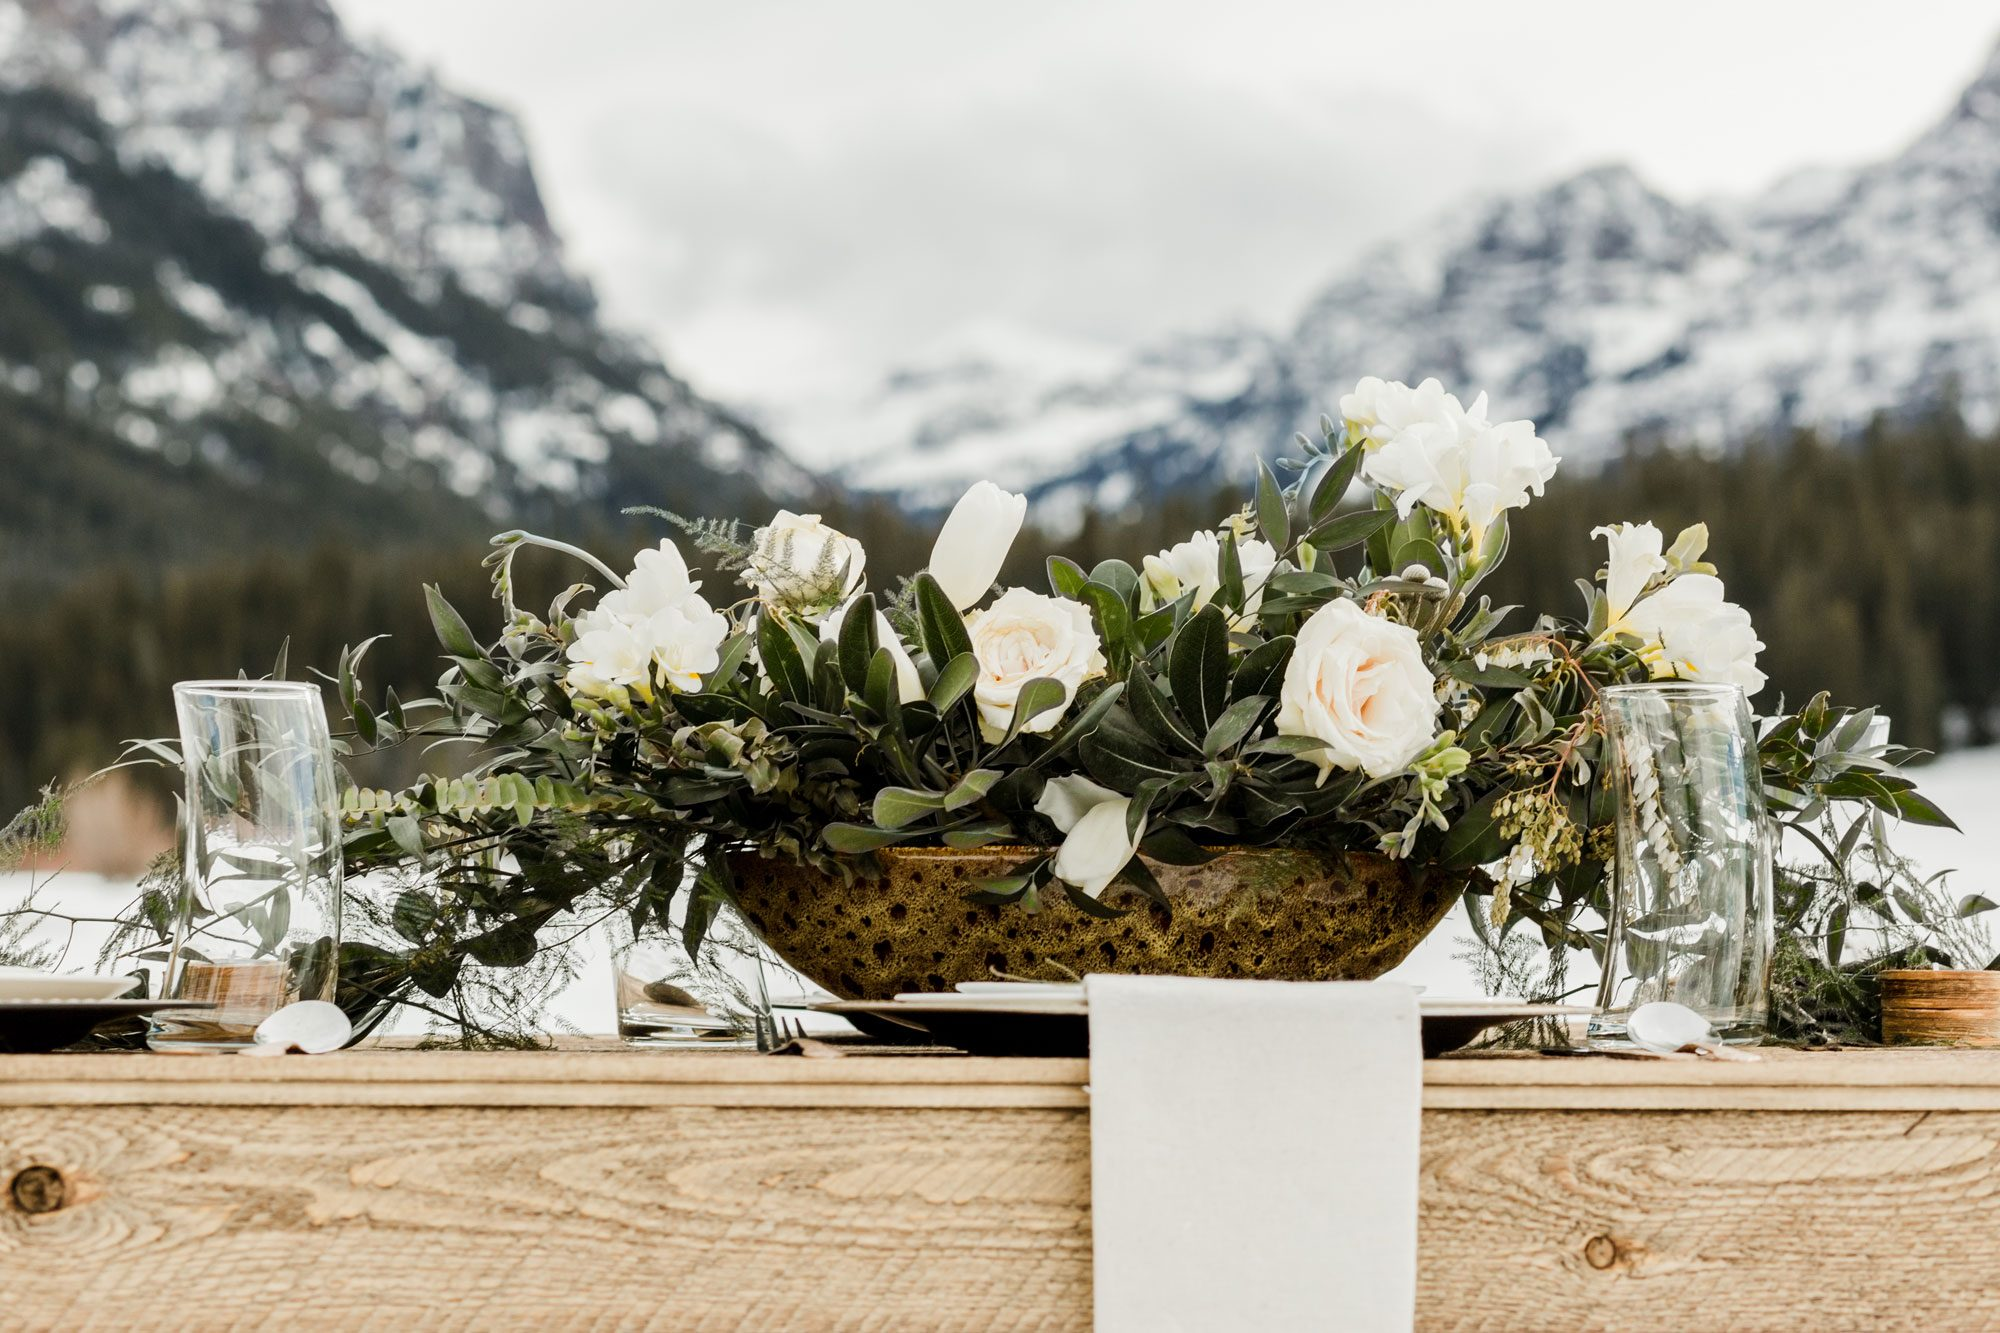 A winter centerpiece in the mountains